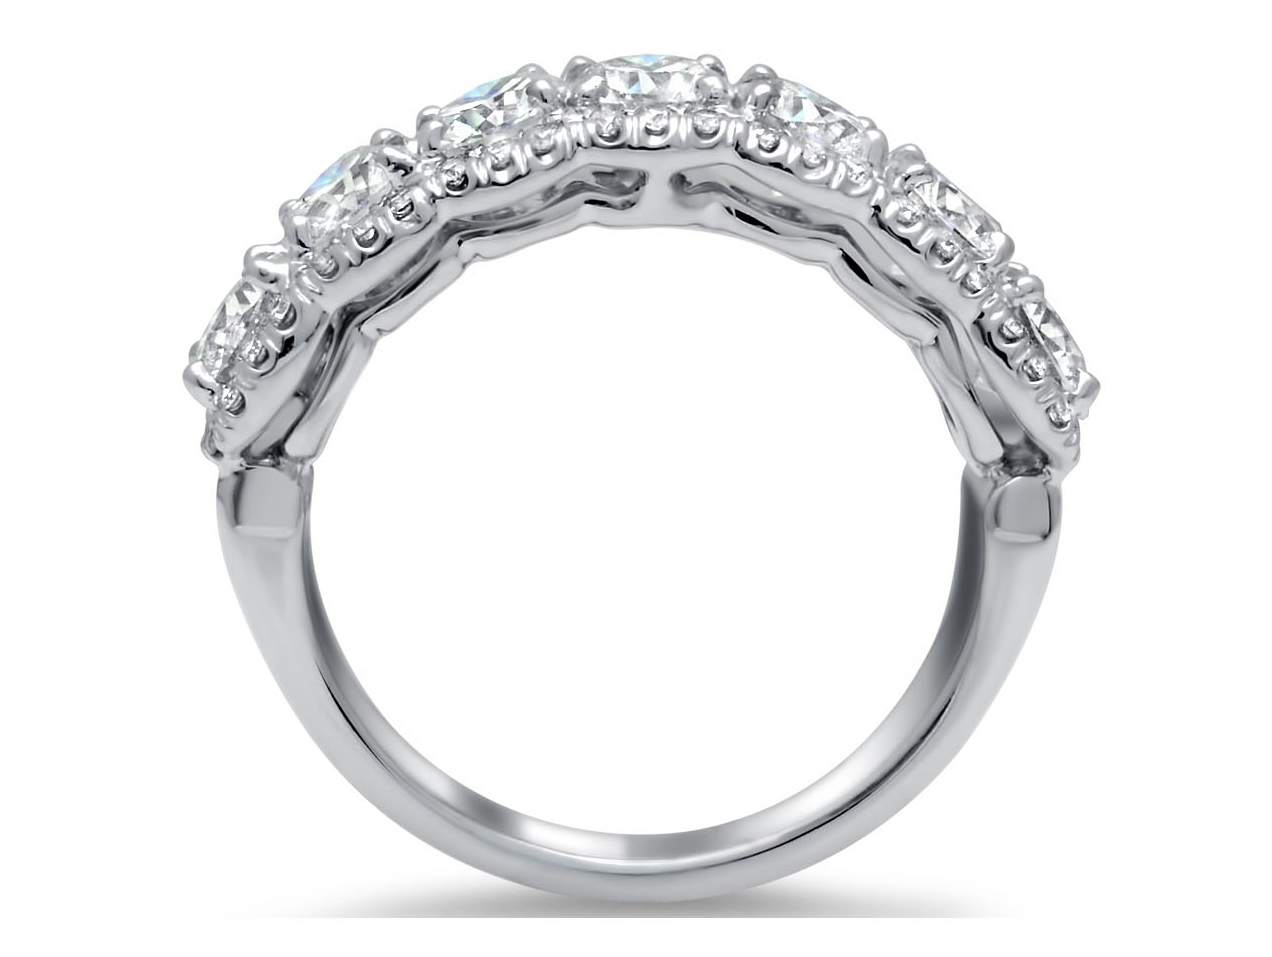 Seven Stone Cushion Diamond Wedding Ring 2.5 Carat Total Weight